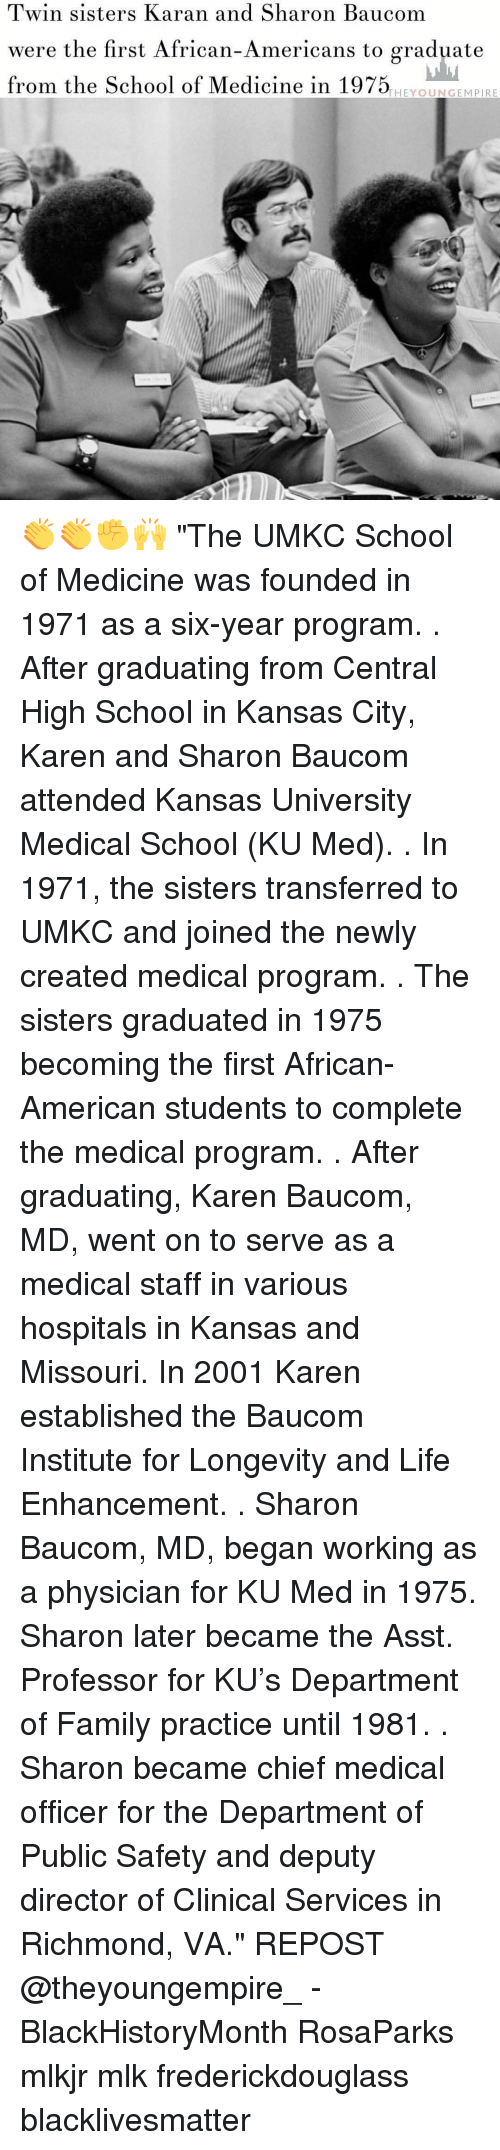 """Memes, The Departed, and Missouri: Twin sisters Karan and Sharon Baucom  were the first African-Americans  to graduate  from the School of Medicine in 1975  THEY OUN GEM PIRE 👏👏✊🙌 """"The UMKC School of Medicine was founded in 1971 as a six-year program. . After graduating from Central High School in Kansas City, Karen and Sharon Baucom attended Kansas University Medical School (KU Med). . In 1971, the sisters transferred to UMKC and joined the newly created medical program. . The sisters graduated in 1975 becoming the first African-American students to complete the medical program. . After graduating, Karen Baucom, MD, went on to serve as a medical staff in various hospitals in Kansas and Missouri. In 2001 Karen established the Baucom Institute for Longevity and Life Enhancement. . Sharon Baucom, MD, began working as a physician for KU Med in 1975. Sharon later became the Asst. Professor for KU's Department of Family practice until 1981. . Sharon became chief medical officer for the Department of Public Safety and deputy director of Clinical Services in Richmond, VA."""" REPOST @theyoungempire_ - BlackHistoryMonth RosaParks mlkjr mlk frederickdouglass blacklivesmatter"""